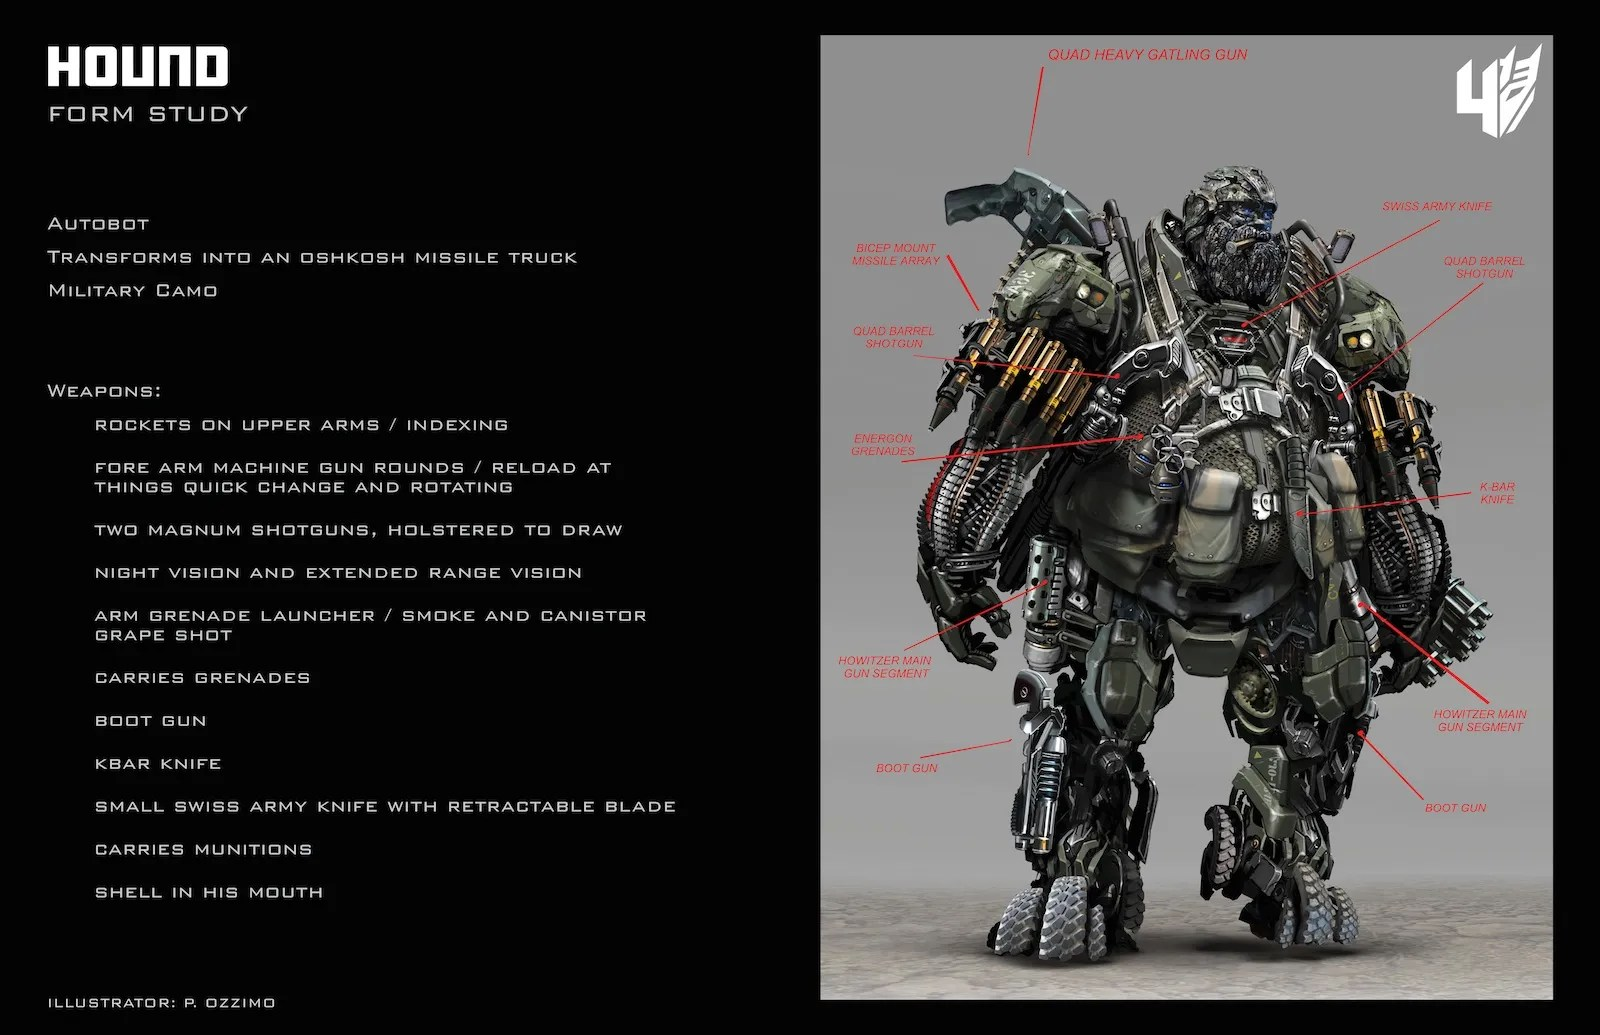 Transformers Fall Of Cybertron Wallpaper Transformers Age Of Extinction Concept Art And Extras